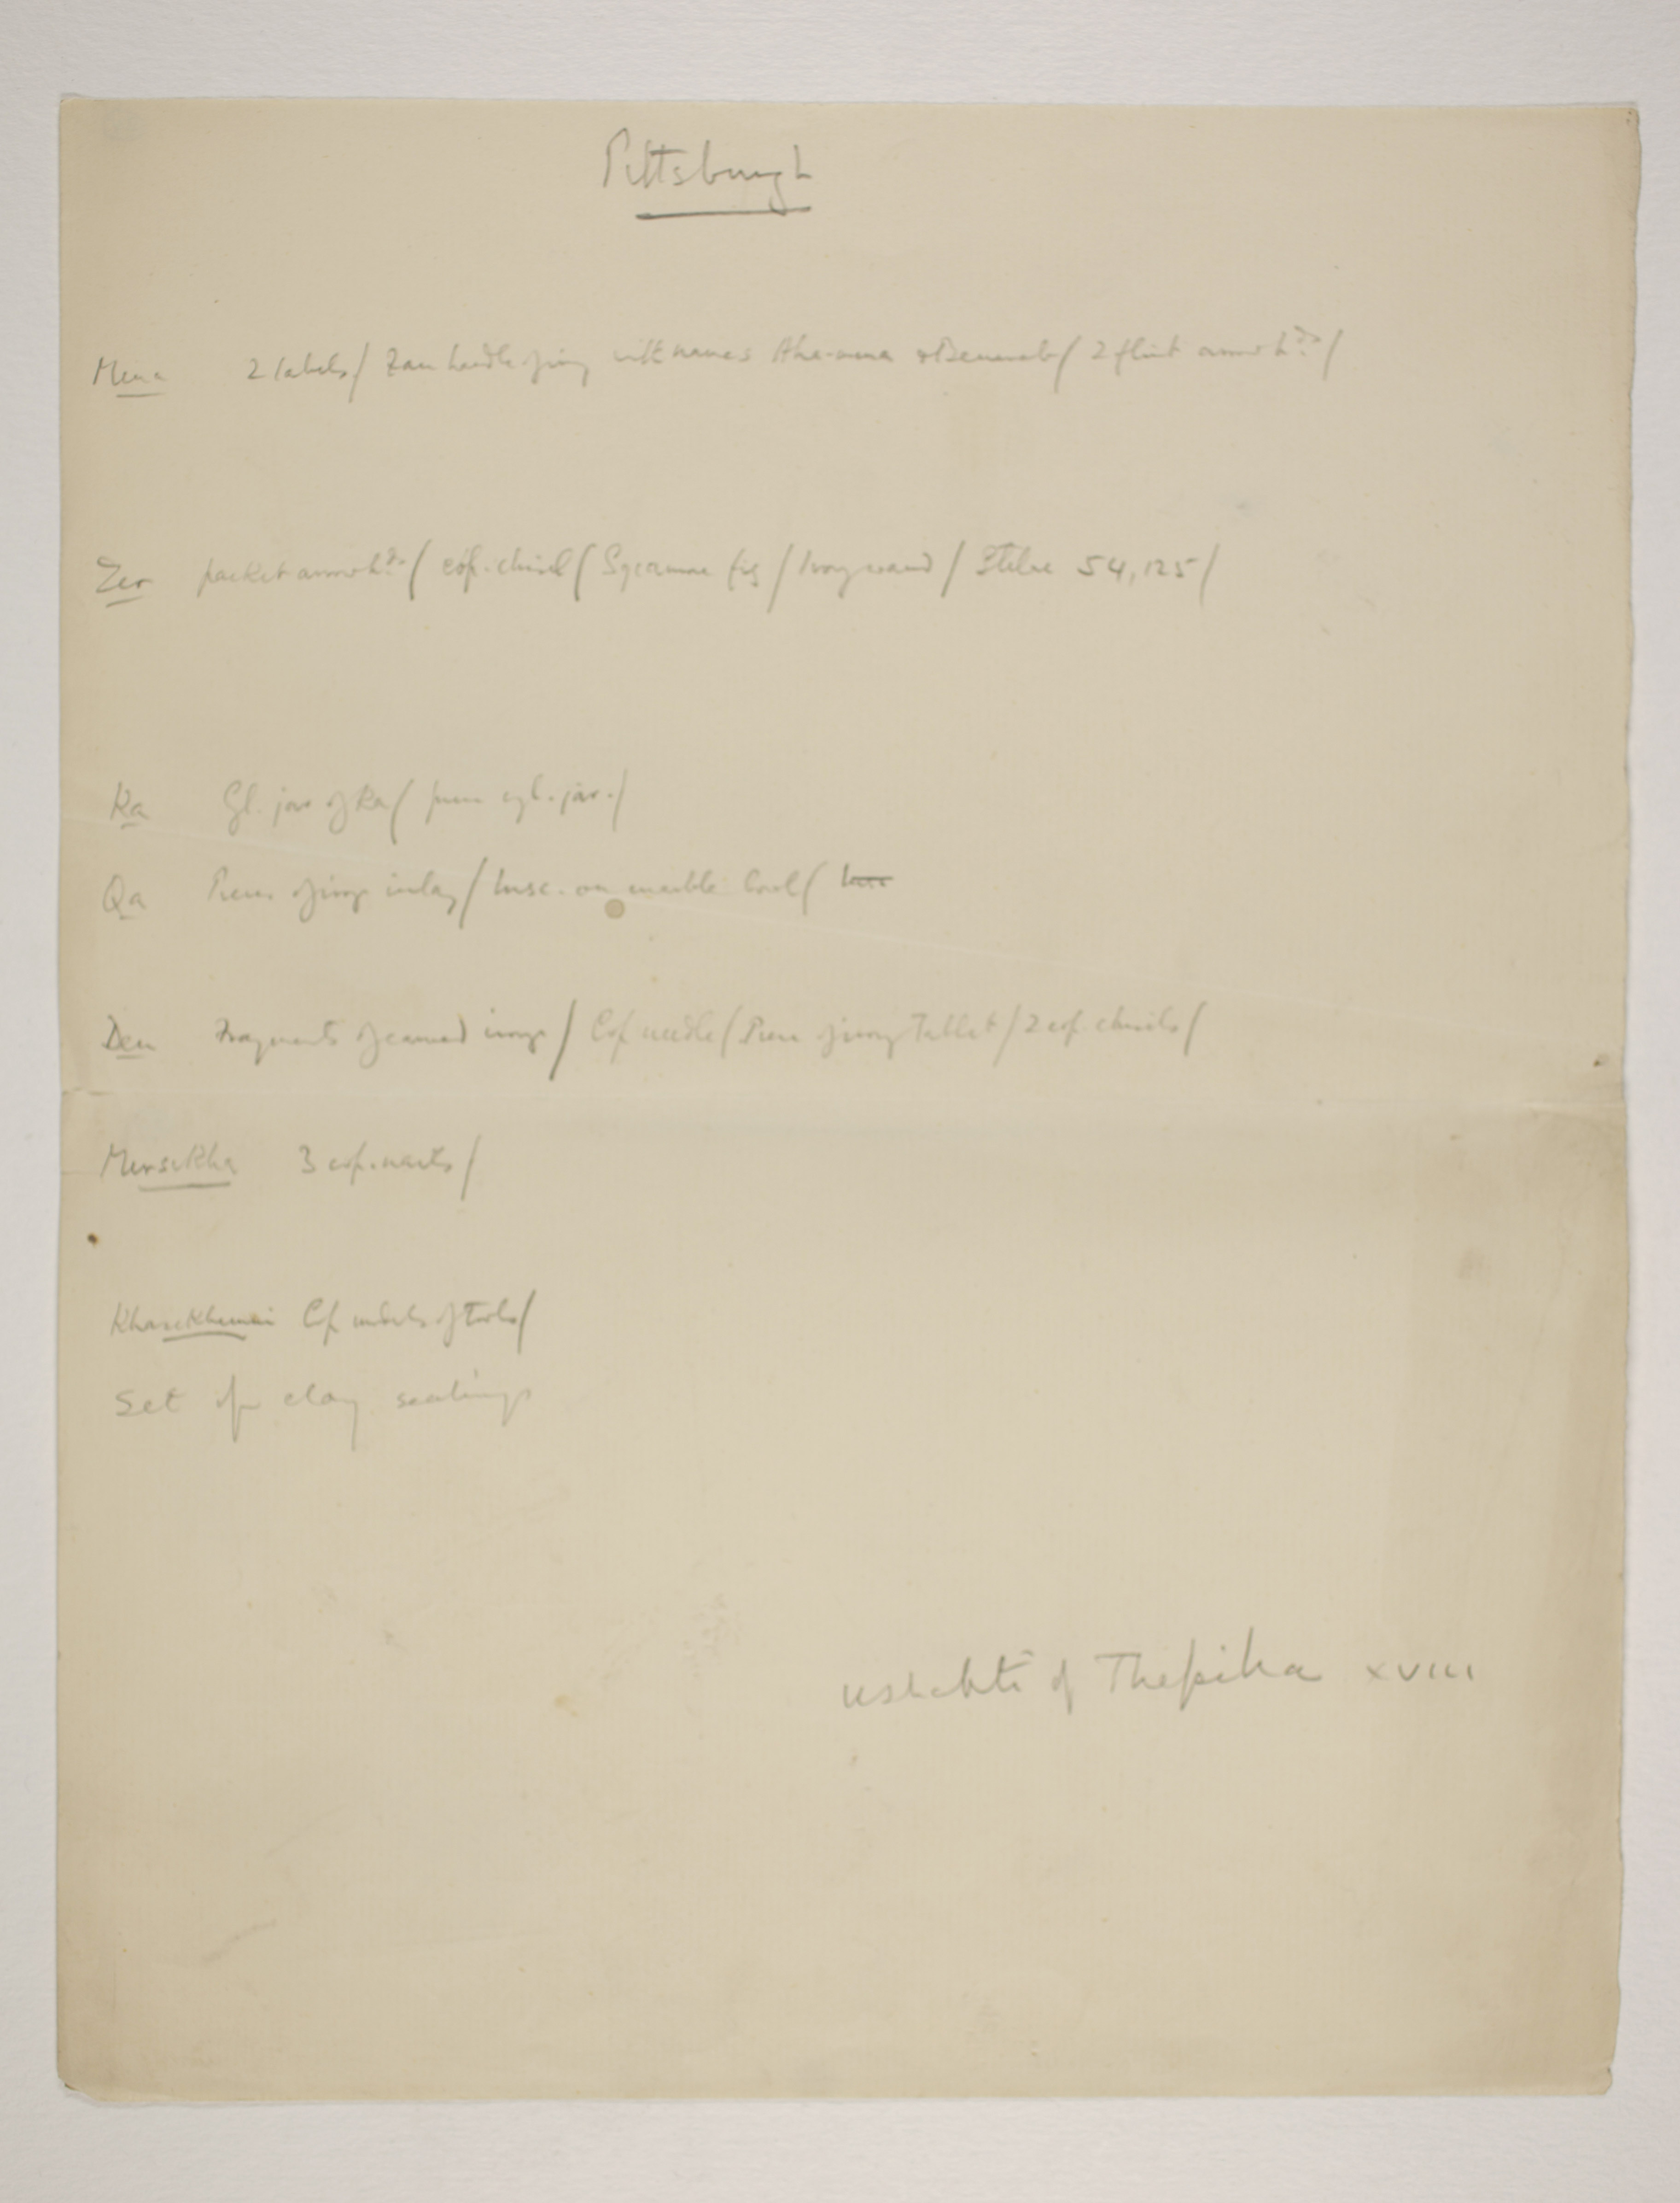 Abydos, Bet Khallaf, el-Mahasna 1900-1901, Individual Institution List, PMA/WFP1/D/9/24